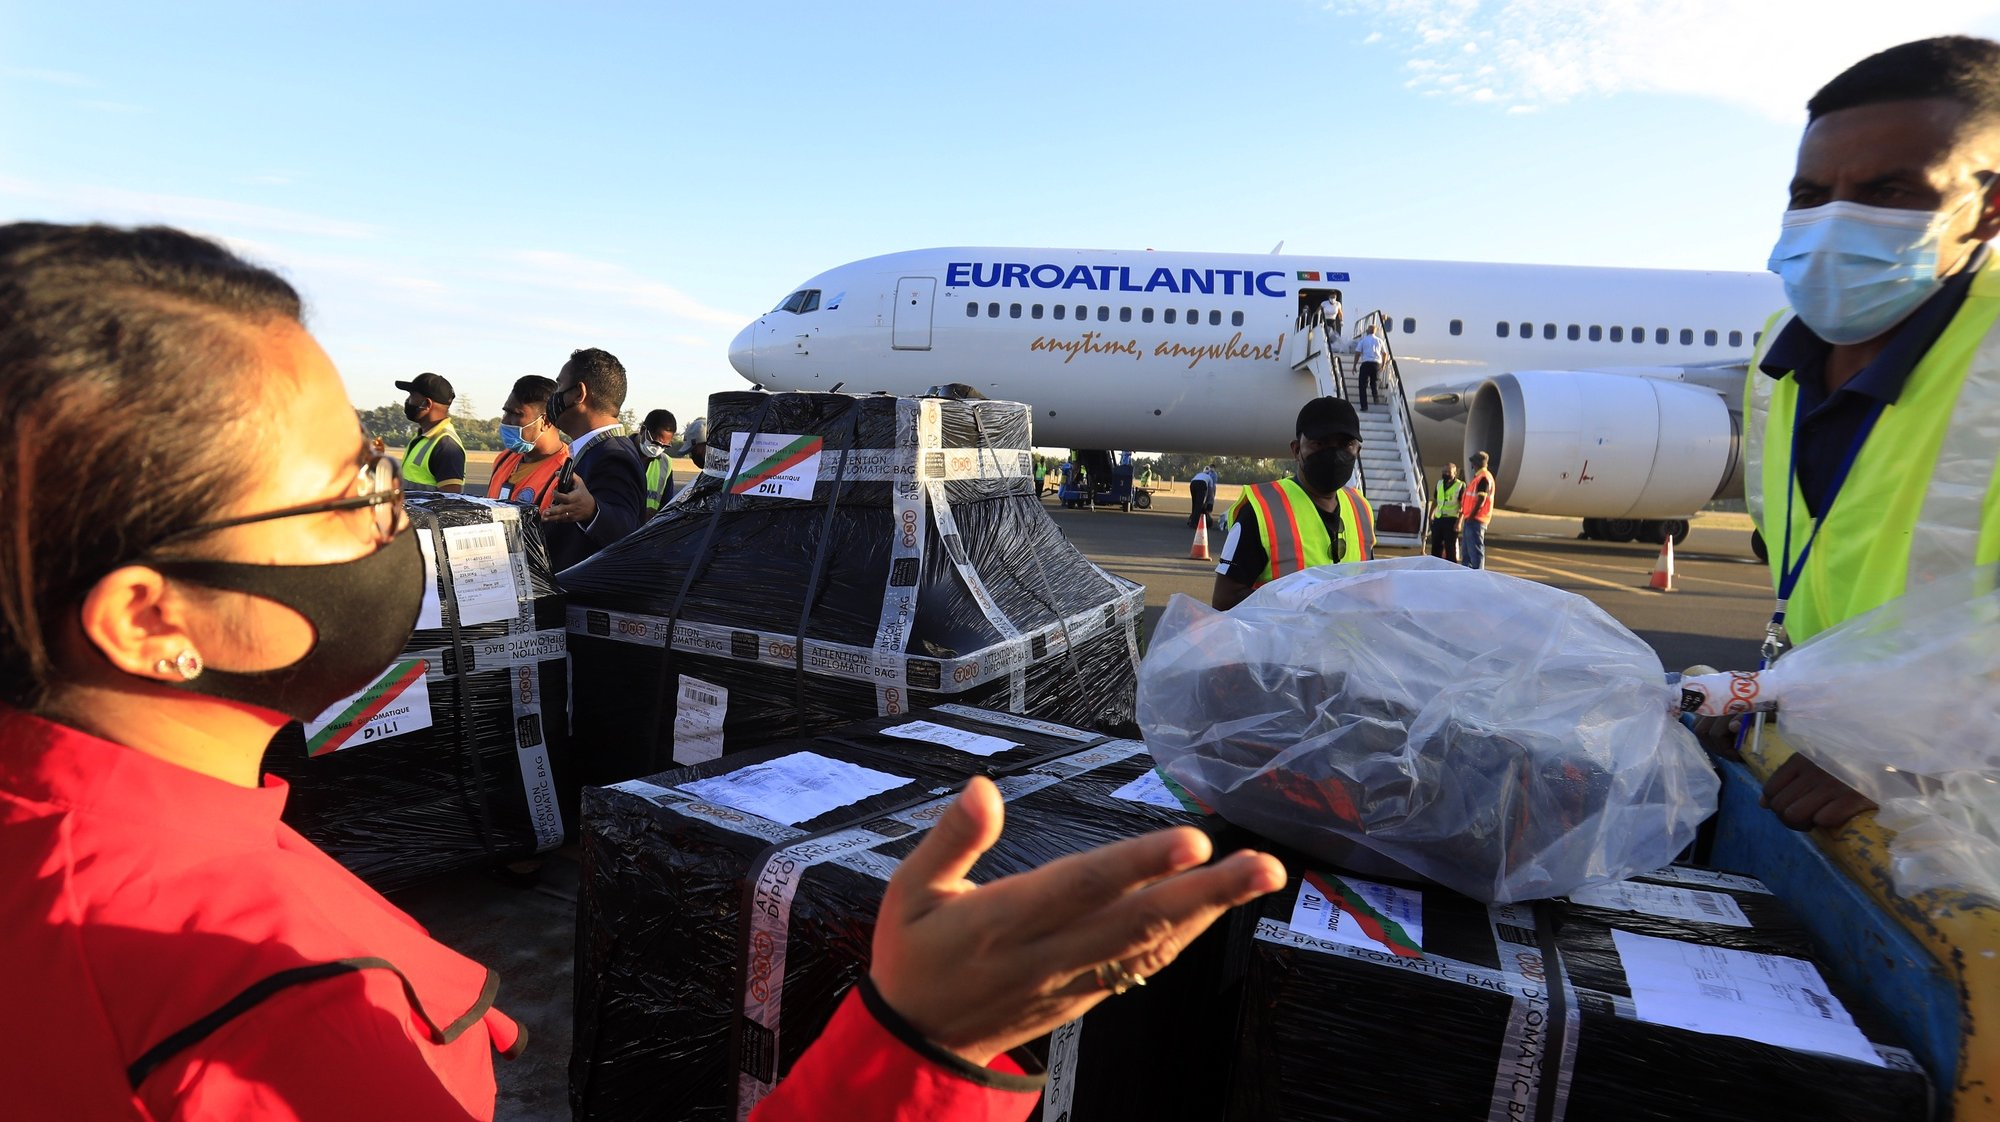 epa09354031 Workers unload AstraZeneca (Vaxzevria) Covid-19 vaccines donated by Portugal's government from an airplane during the arrival at Nicolau Lobato International Airport in Dili, East Timor, also known as Timor Leste, 20 July 2021. East Timor has recorded more than 10,000 coronavirus disease (COVID-19) cases since the beginning of the pandemic.  EPA/ANTONIO DASIPARU